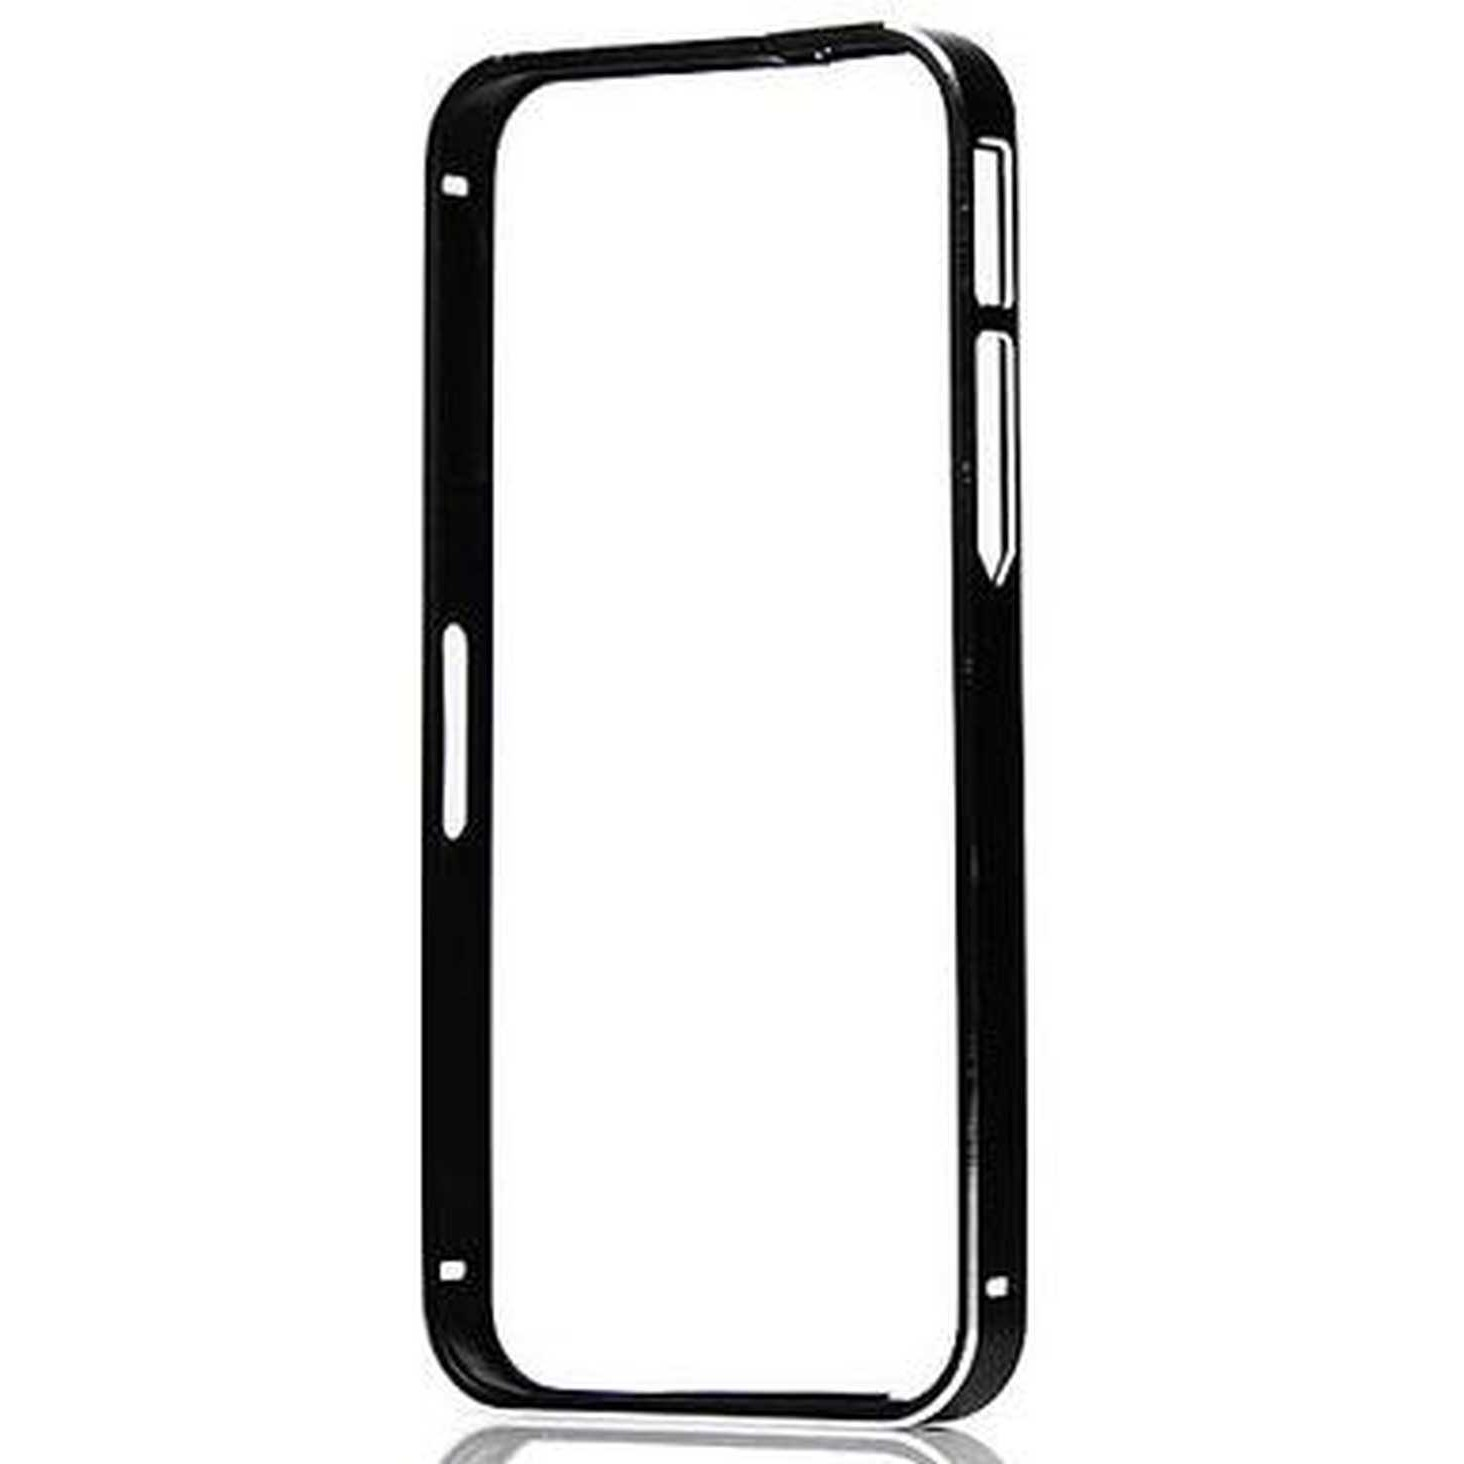 promo code 885fd 3a66a Bumper Cover for Samsung GALAXY Note 3 Neo 3G SM-N750